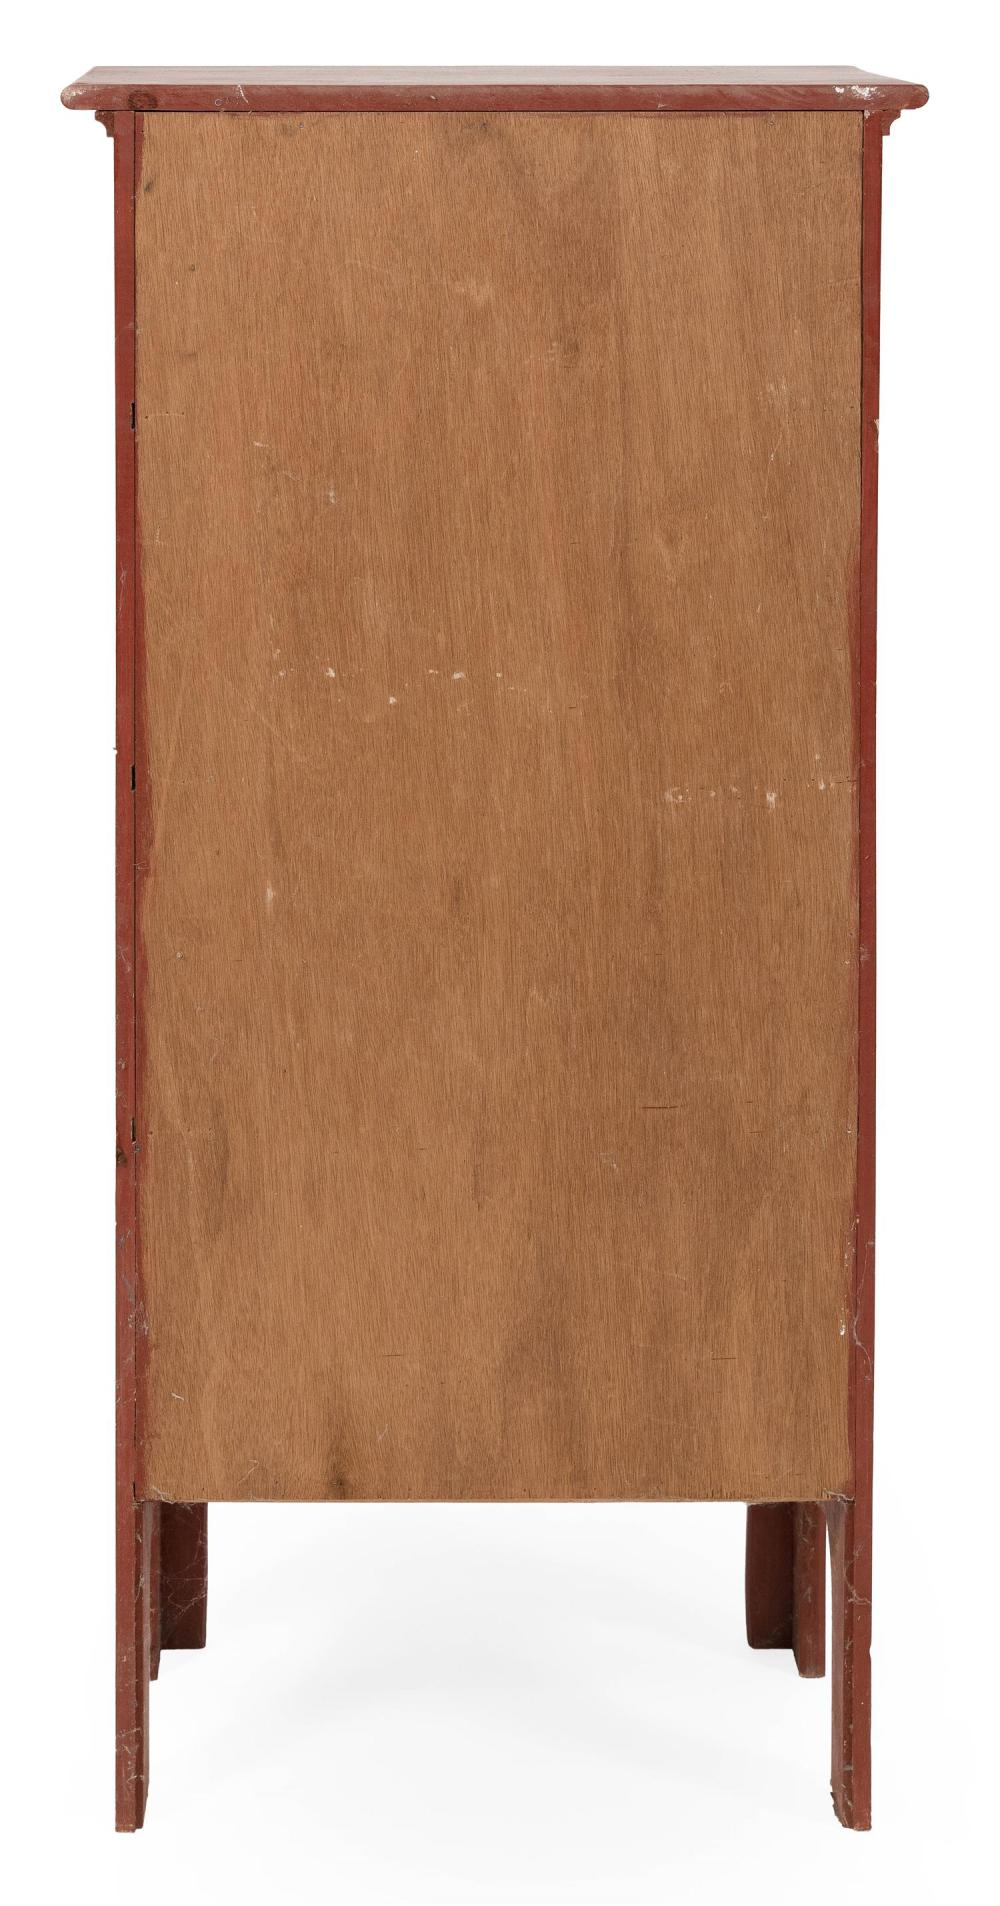 CHIMNEY CUPBOARD Under deep red paint. Paneled door encloses four interior shelves. Height 51.25